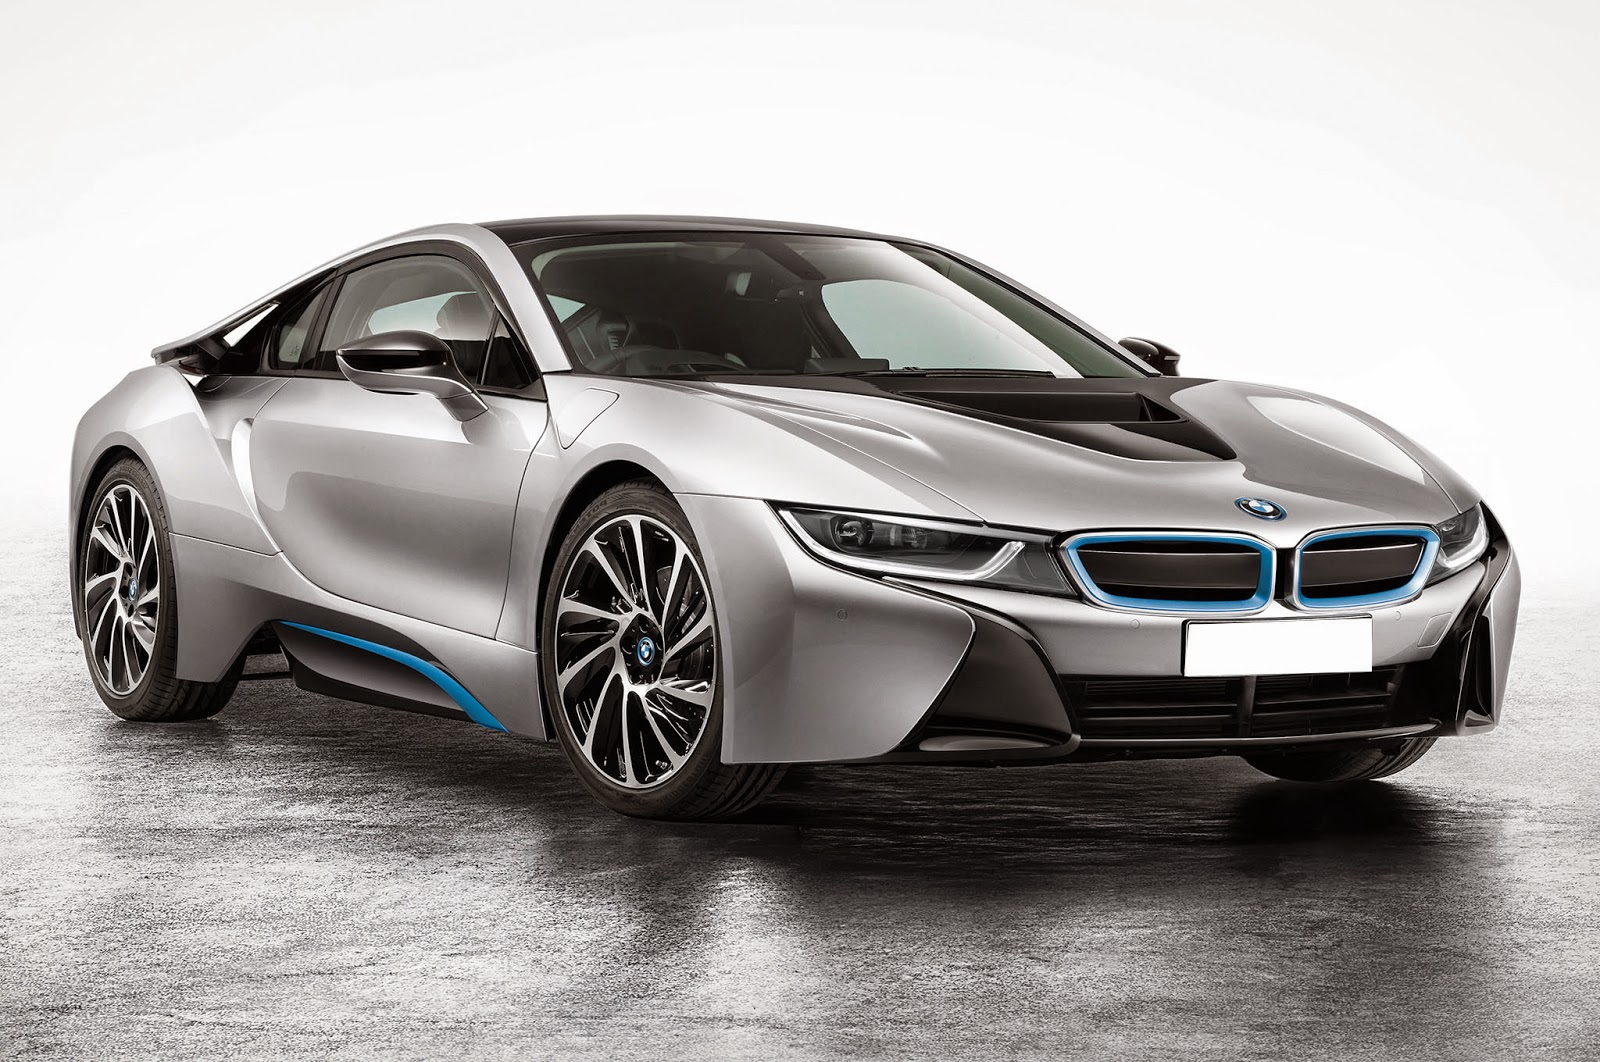 2015 bmw i8 india specs price and features techgangs. Black Bedroom Furniture Sets. Home Design Ideas